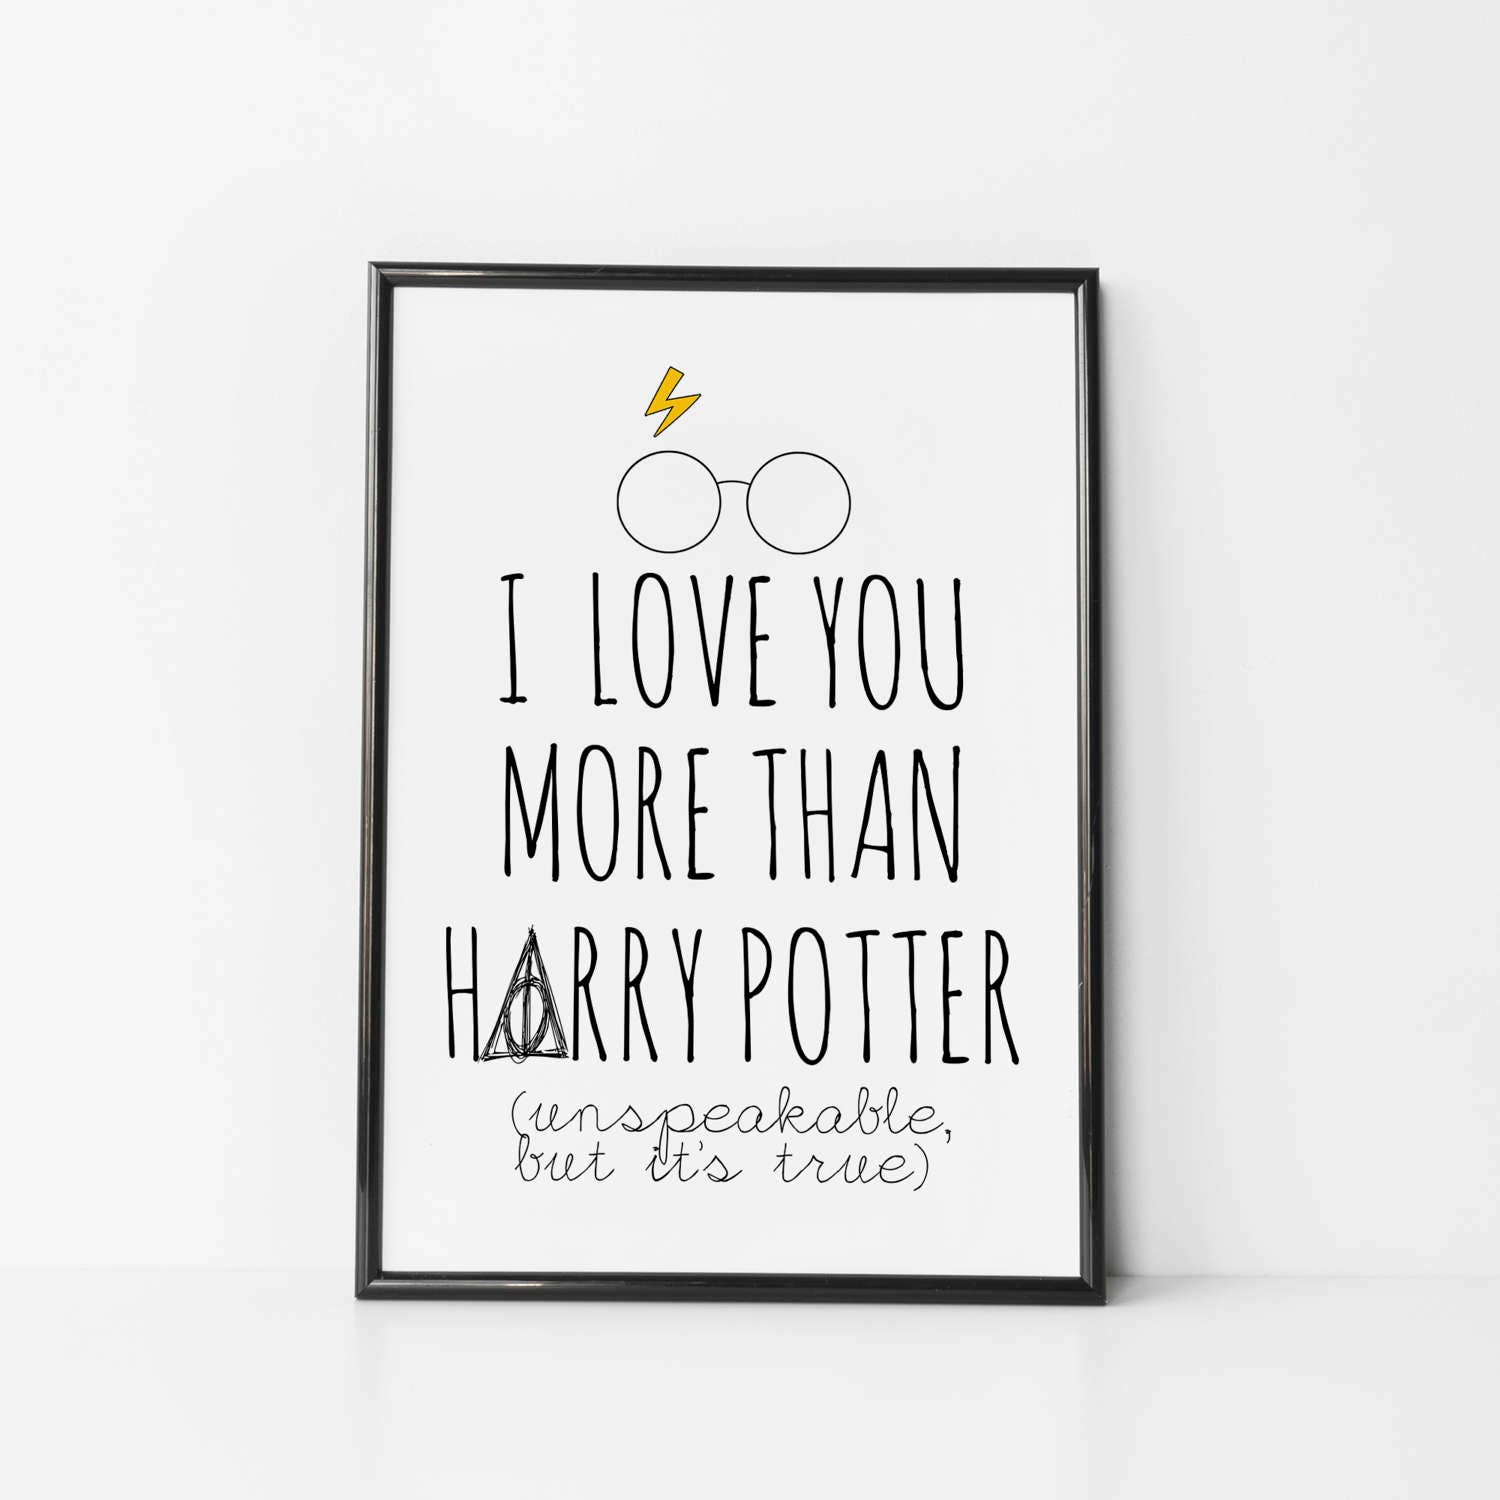 Harry Potter Quotes Love: Harry Potter Gift Harry Potter Wall Art Harry Potter Quote